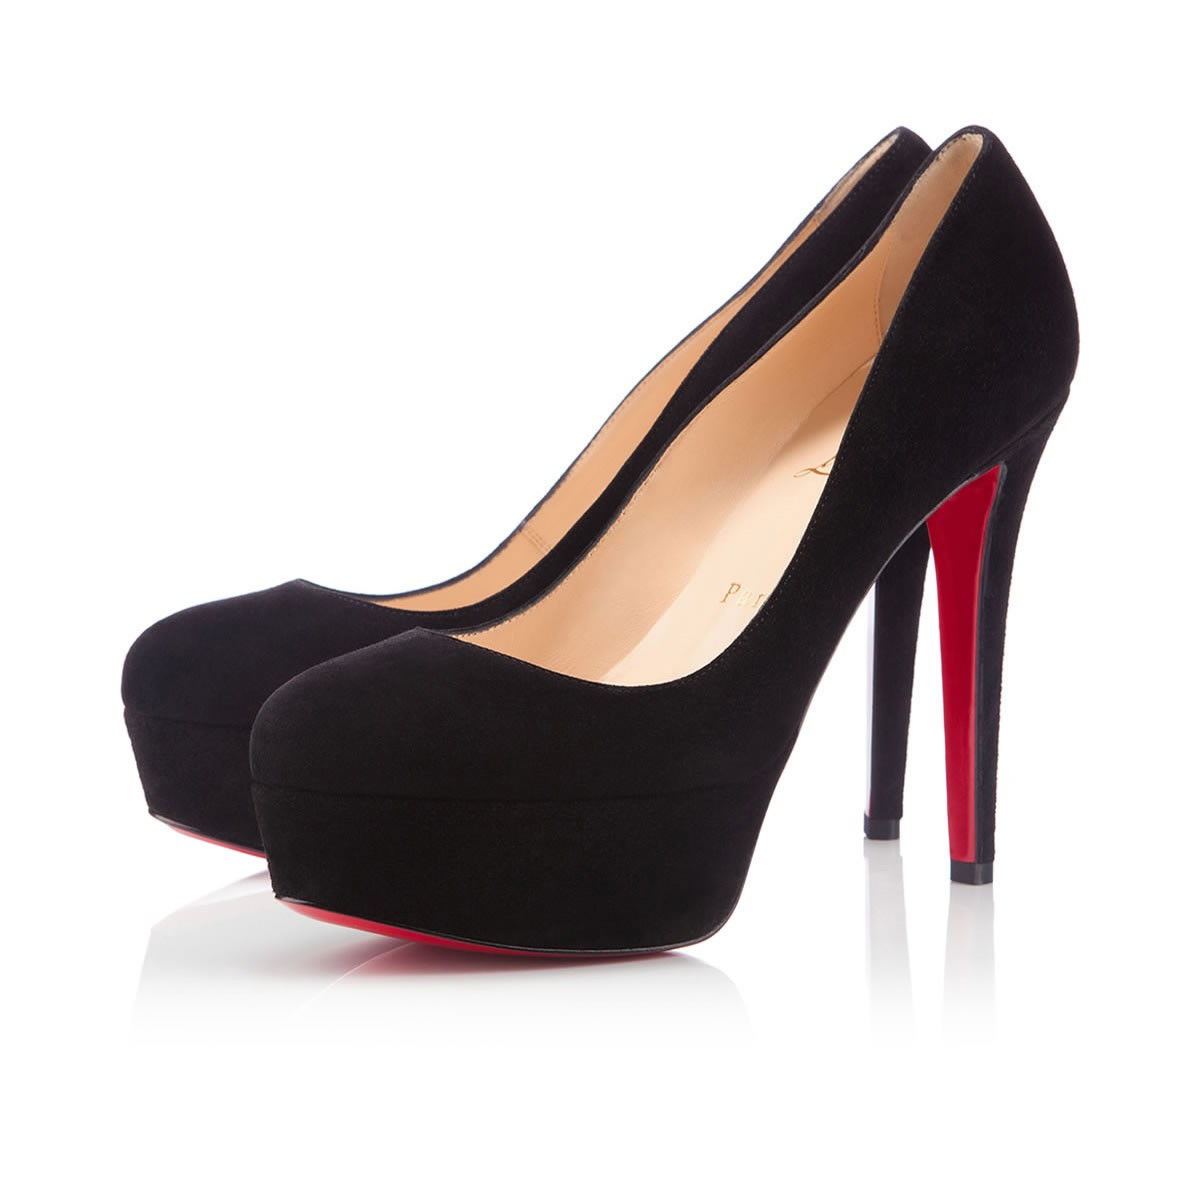 Shoes With Red Bottoms